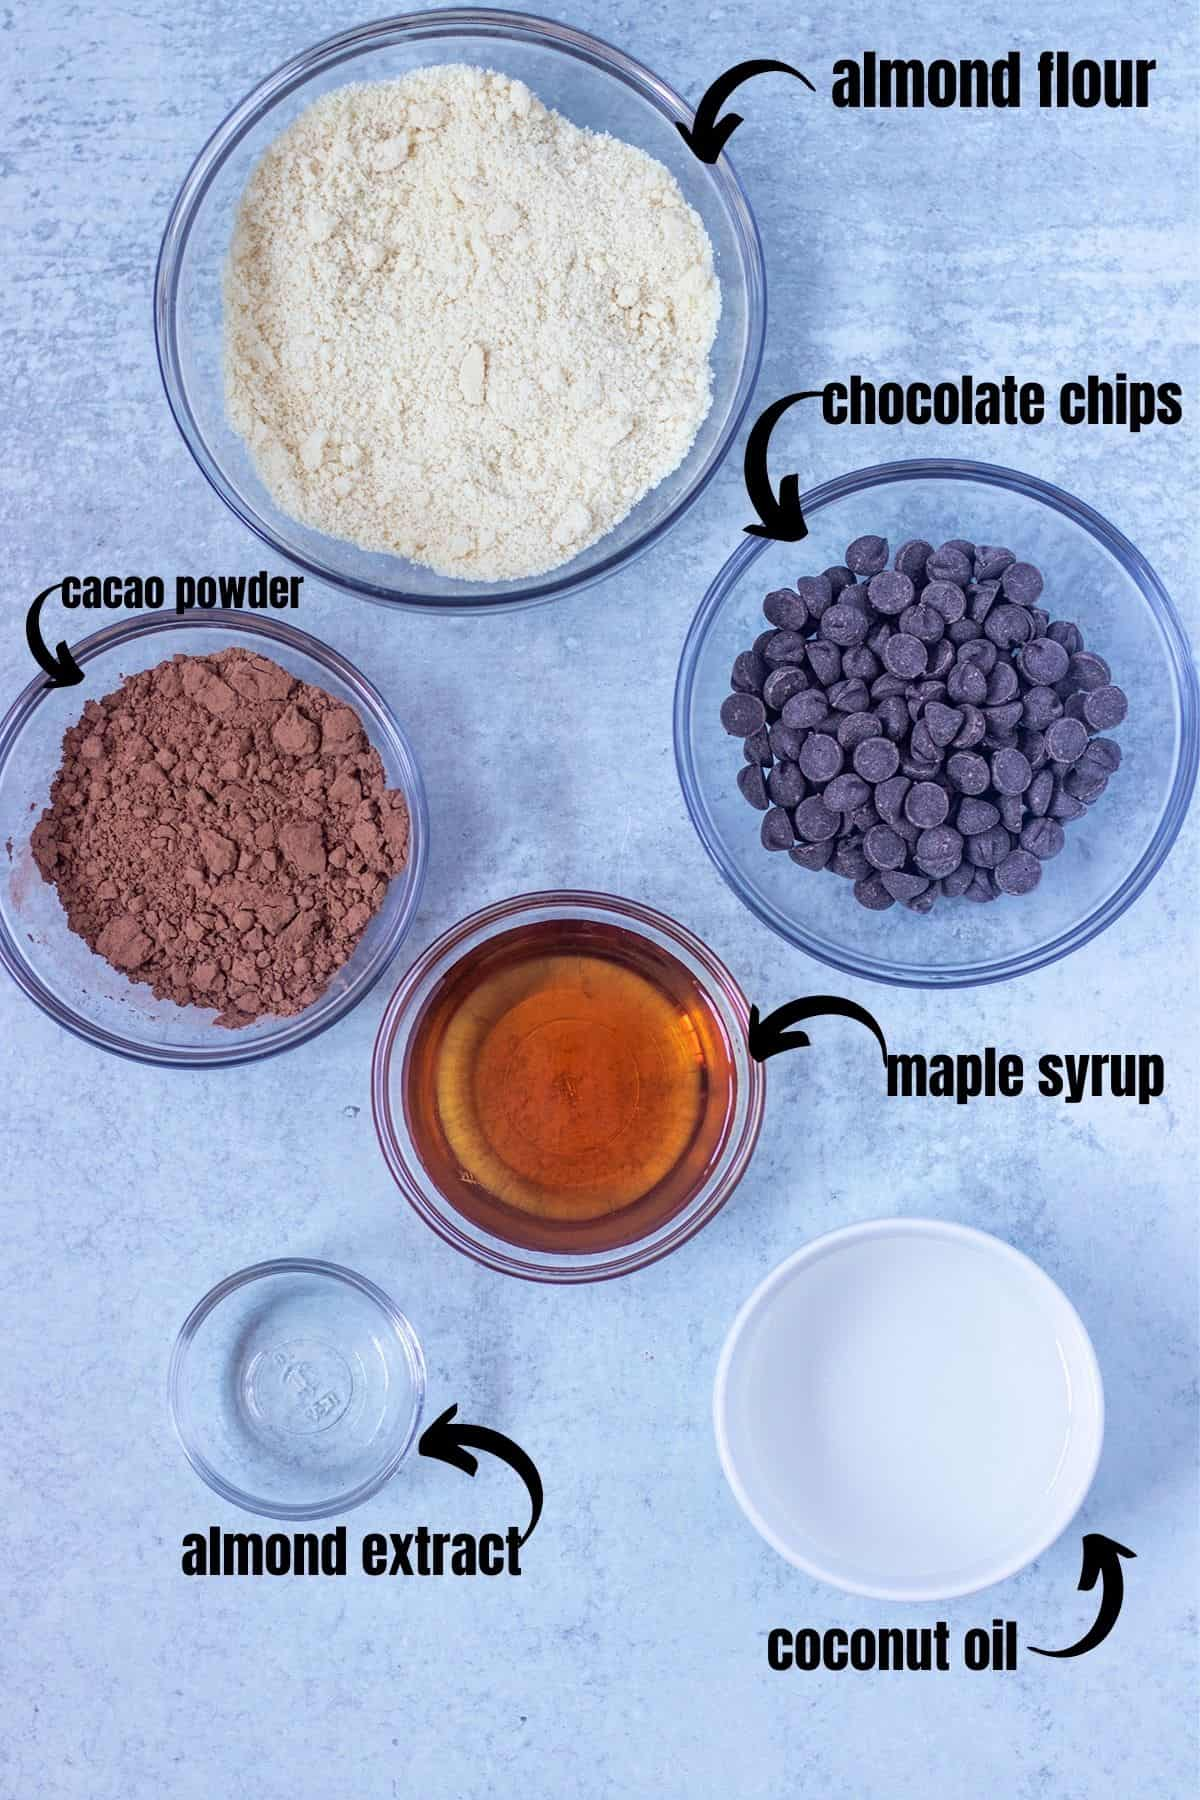 almond flour, dark chocolate chips, cacao powder, maple syrup, almond extract, coconut oil